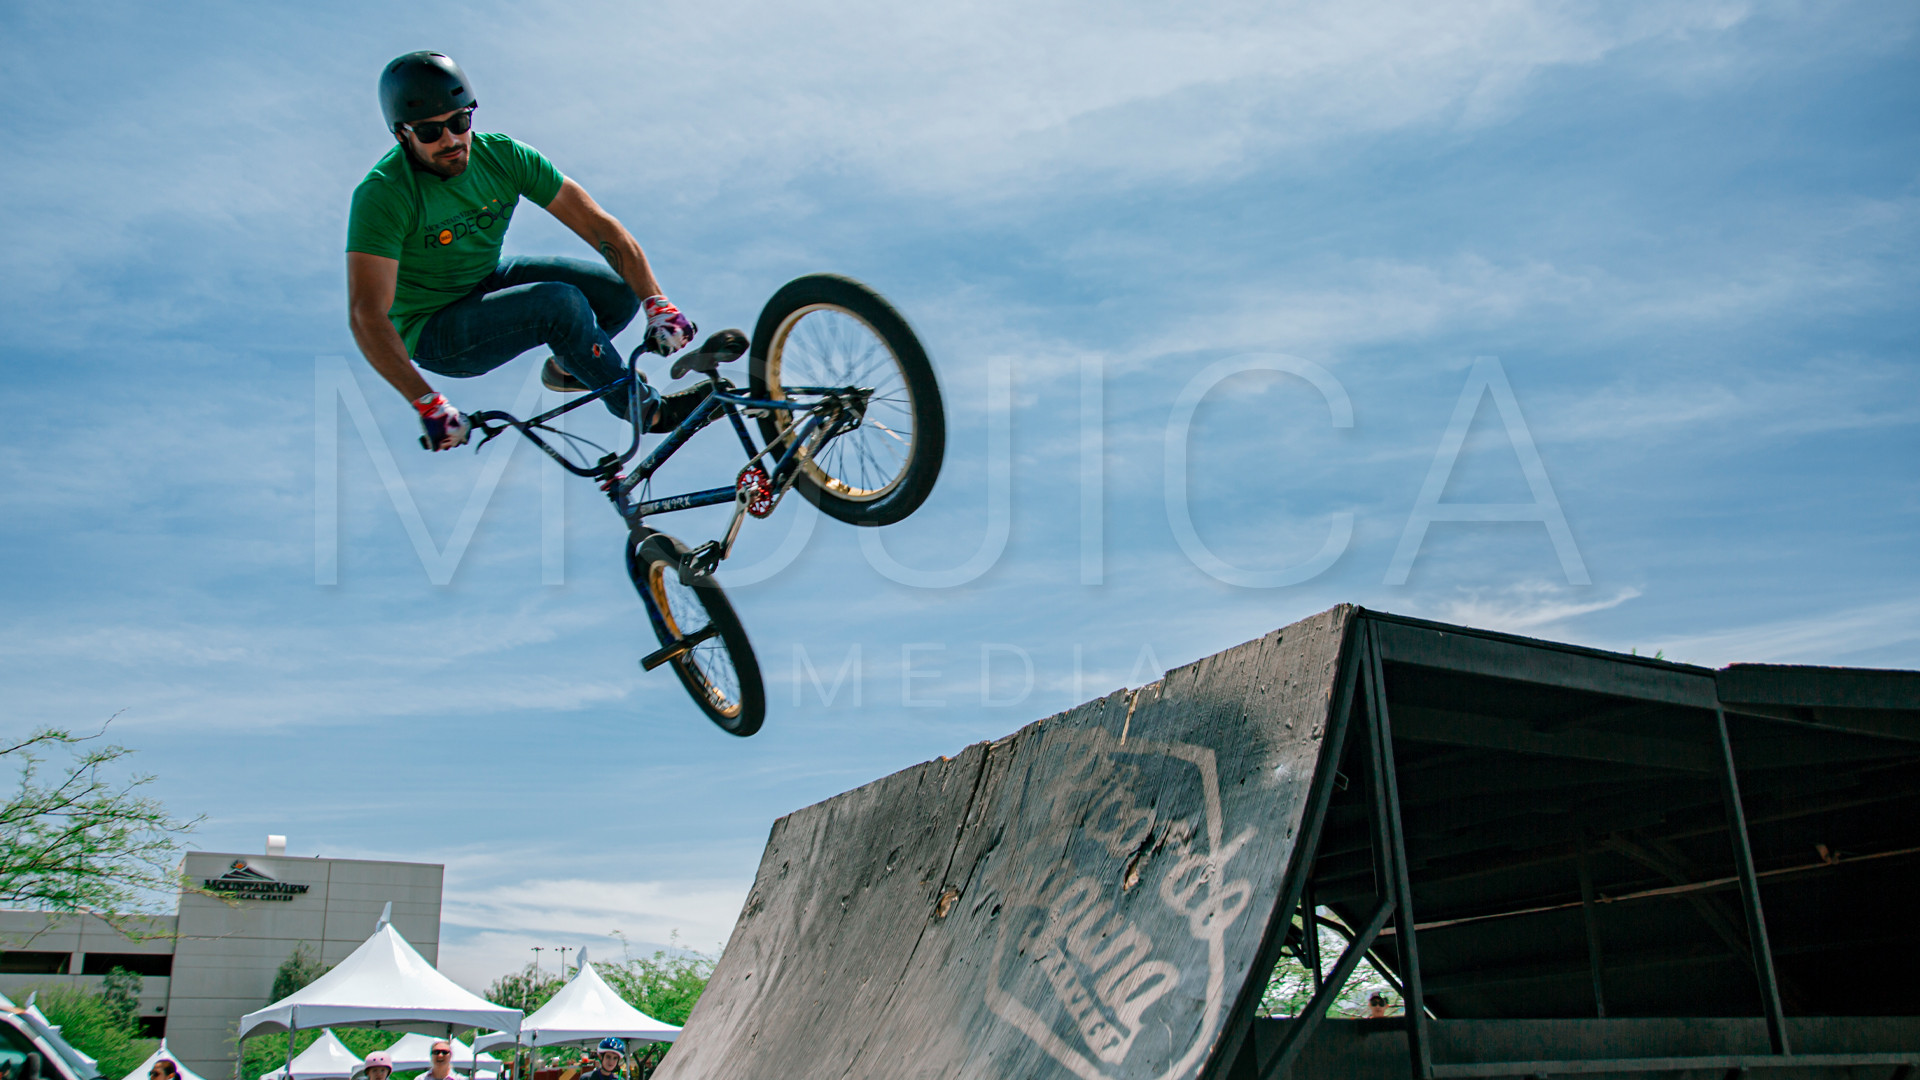 Adin Fly Tail Whip